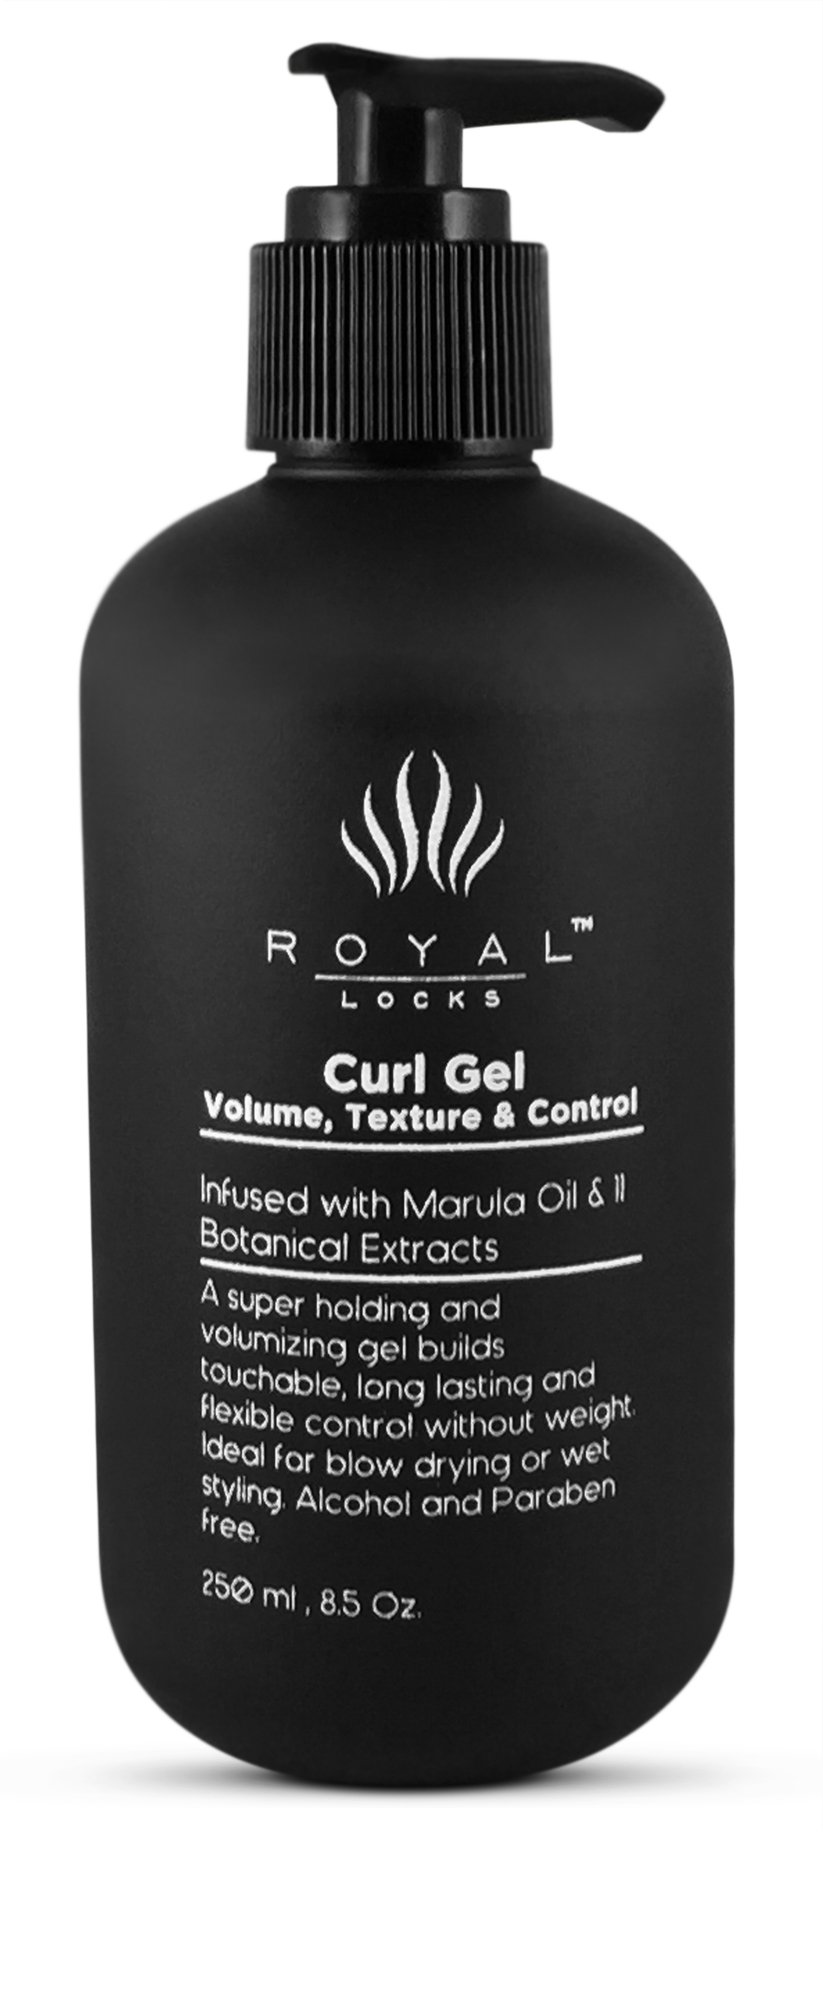 Luxury Curly Hair Defining Curl Gel infused with Marula Oil and Botanical Extracts by Royal Locks for Super Defined Soft Moisturized Curls. Alcohol Free 8.5 oz